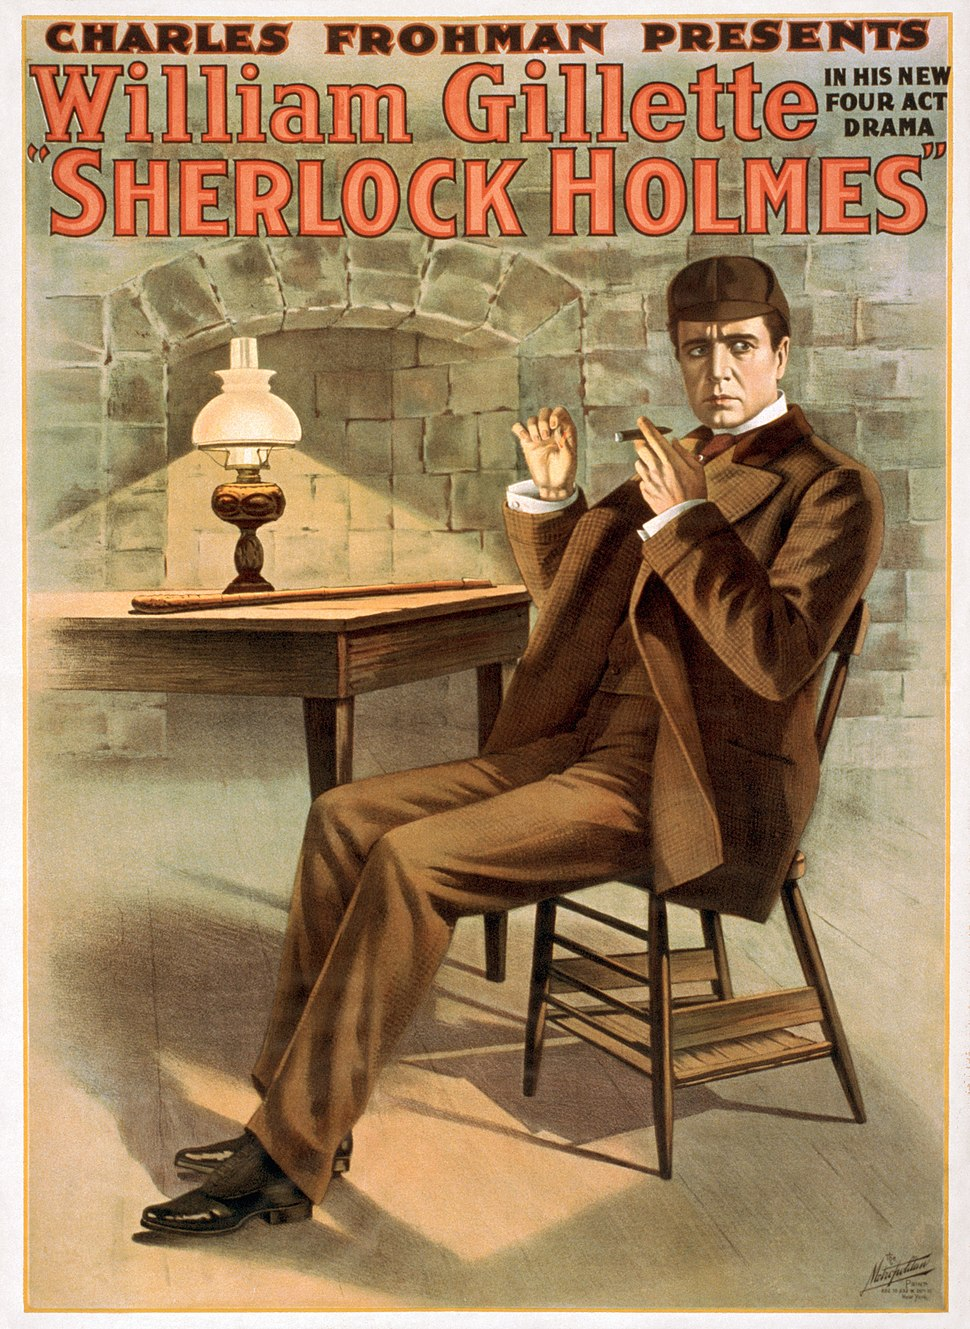 Charles Frohman presents William Gillette in his new four act drama, Sherlock Holmes (LOC var 1364) (edit)